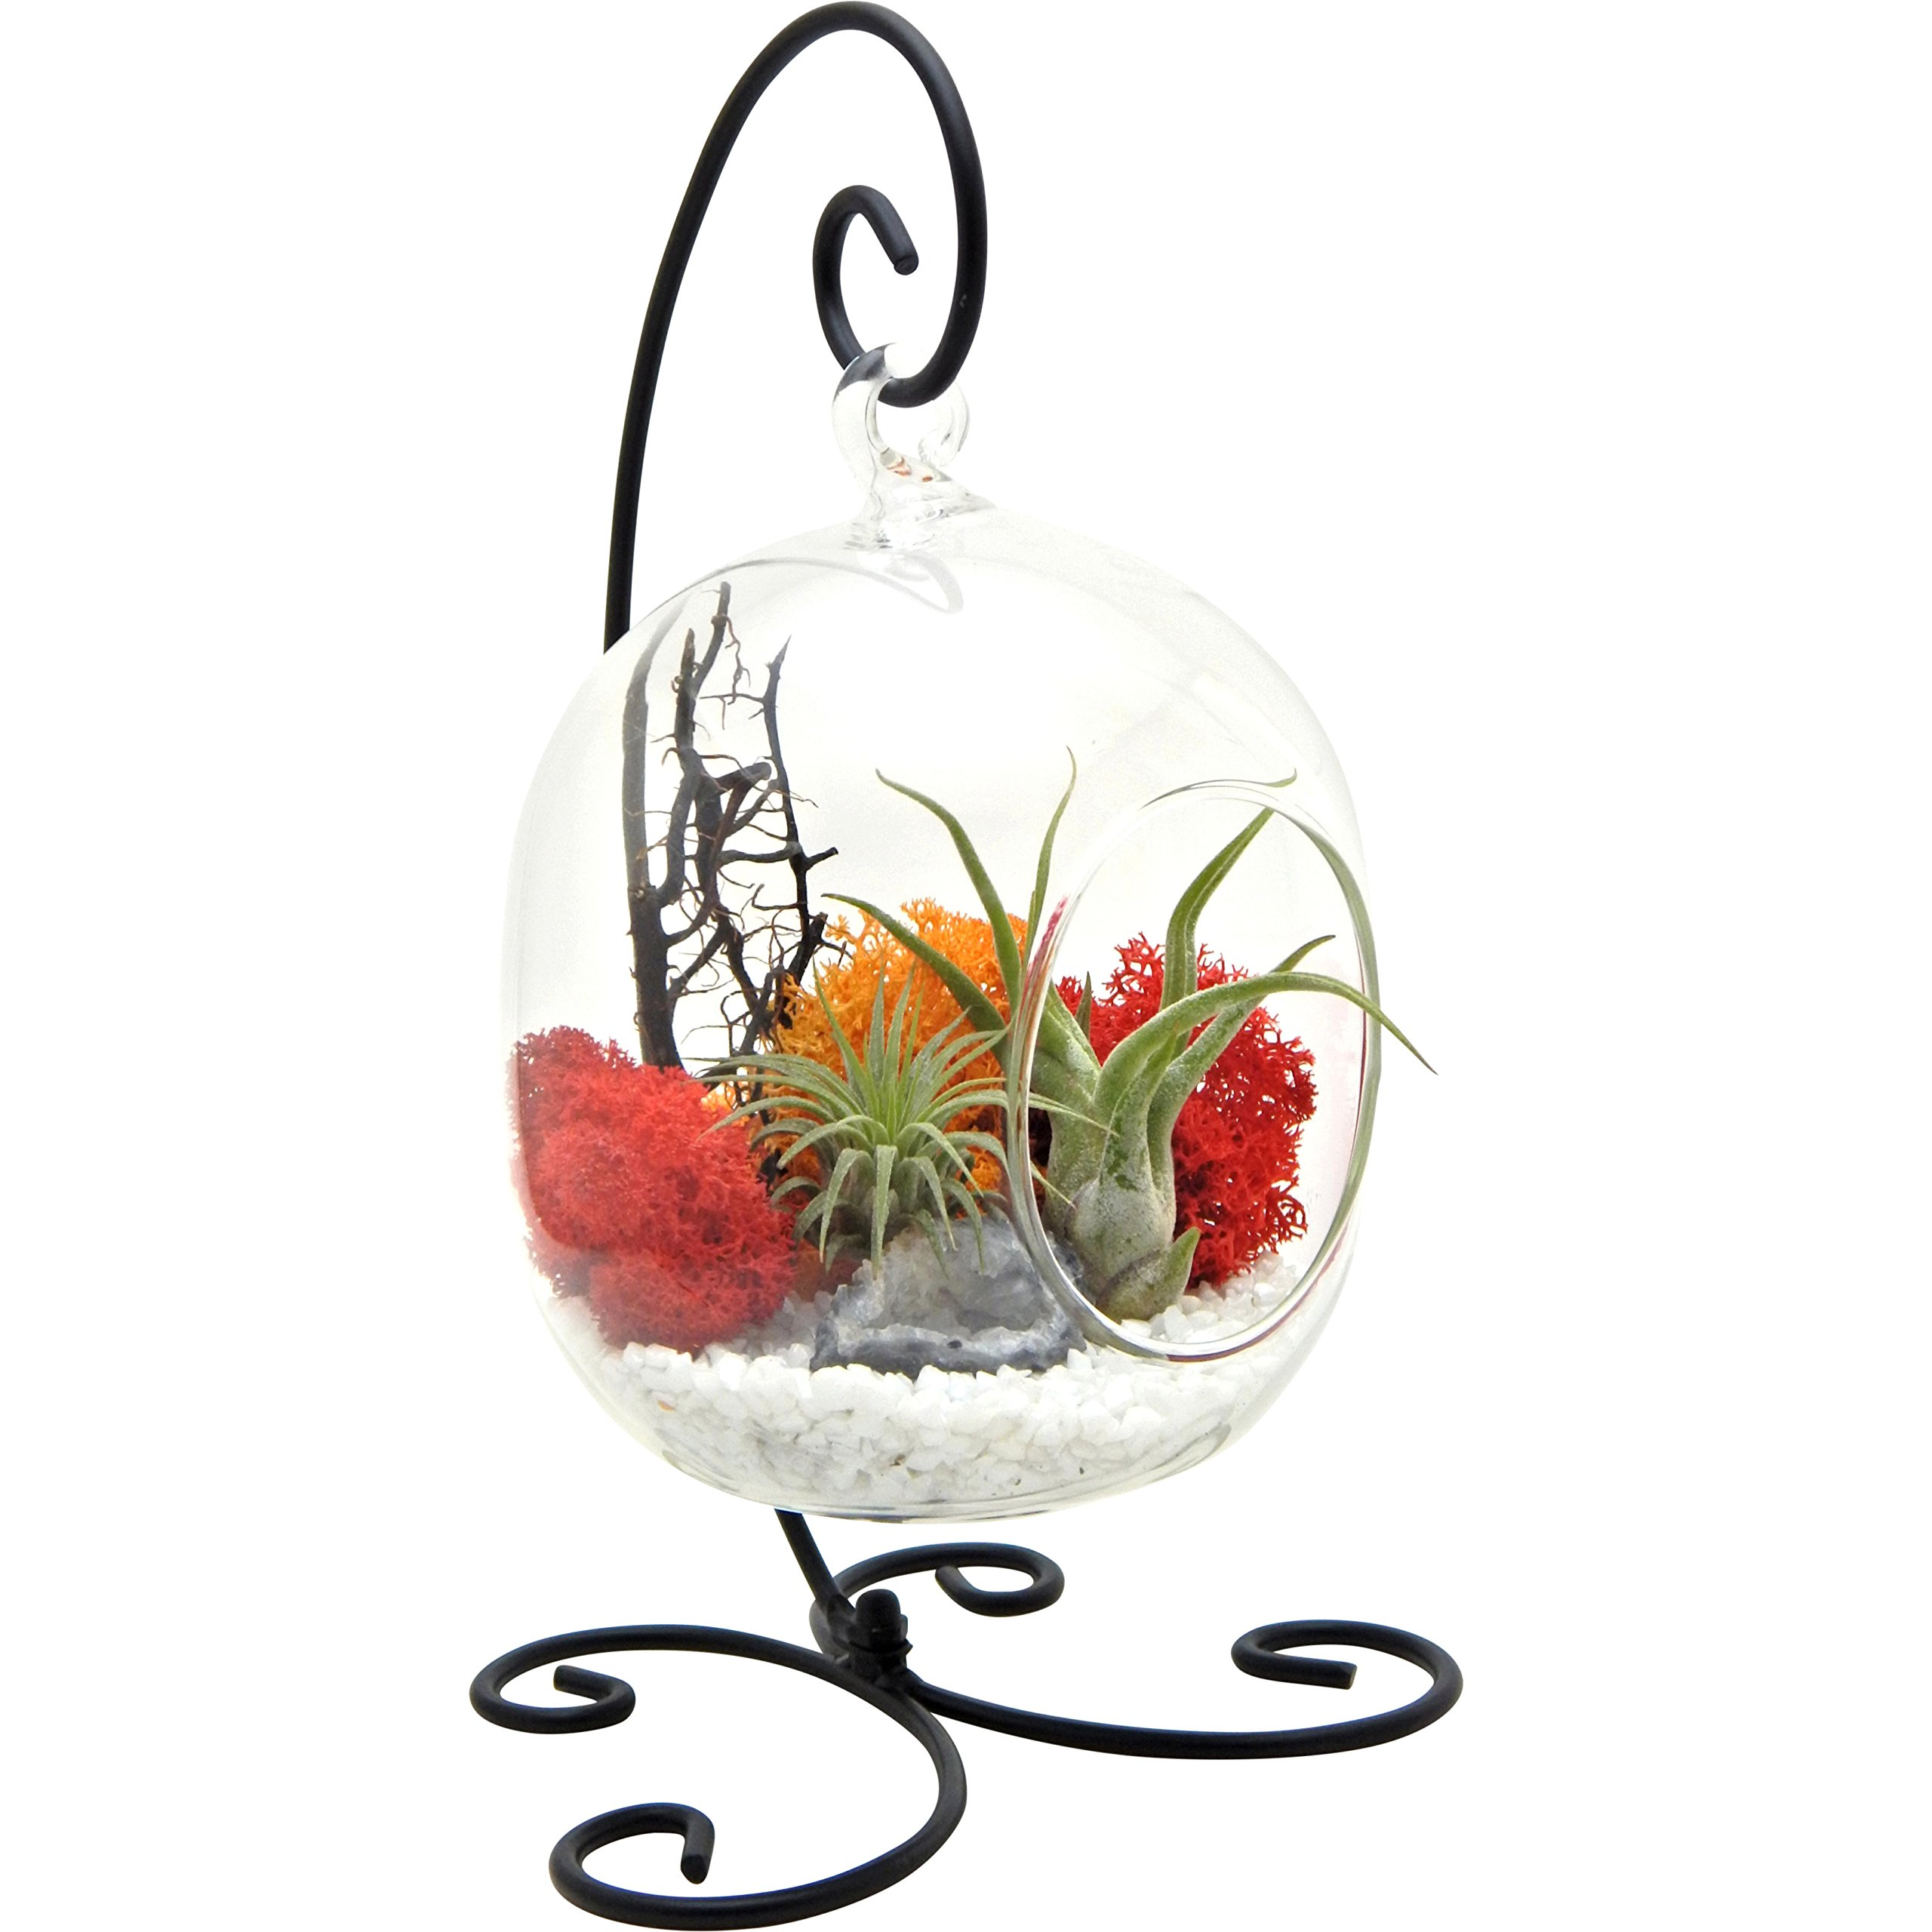 Bliss Gardens Air Plant Terrarium Kit with 6'' Oval Glass with Geode Crystal - Sunburst On Ice - Small Black Metal Stand Included by Bliss Gardens